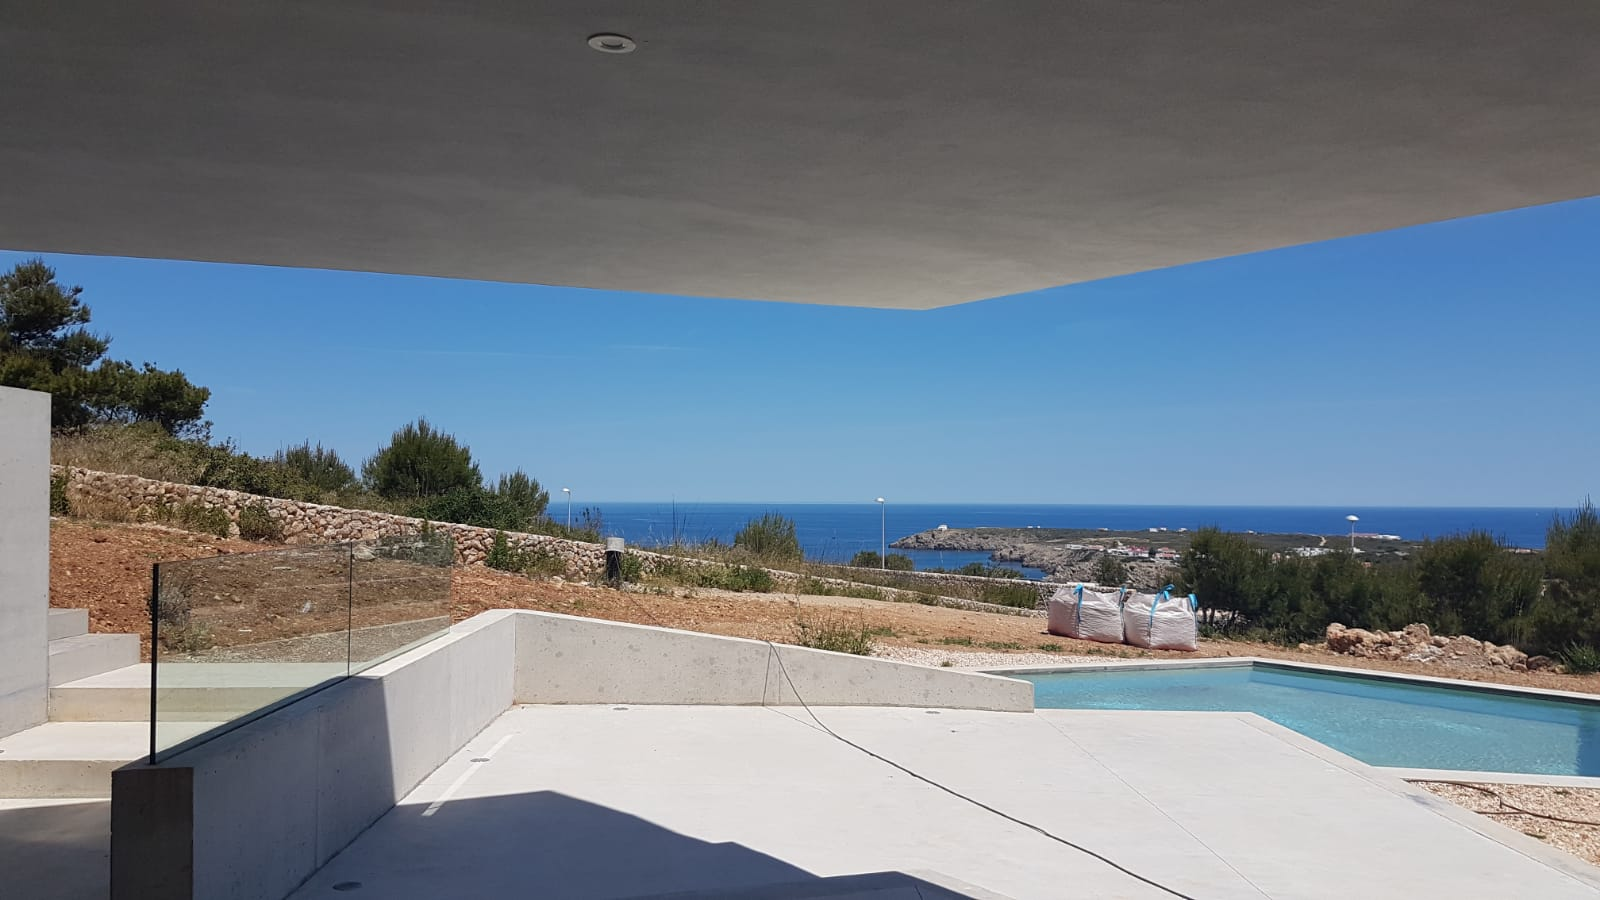 property for sale menorca